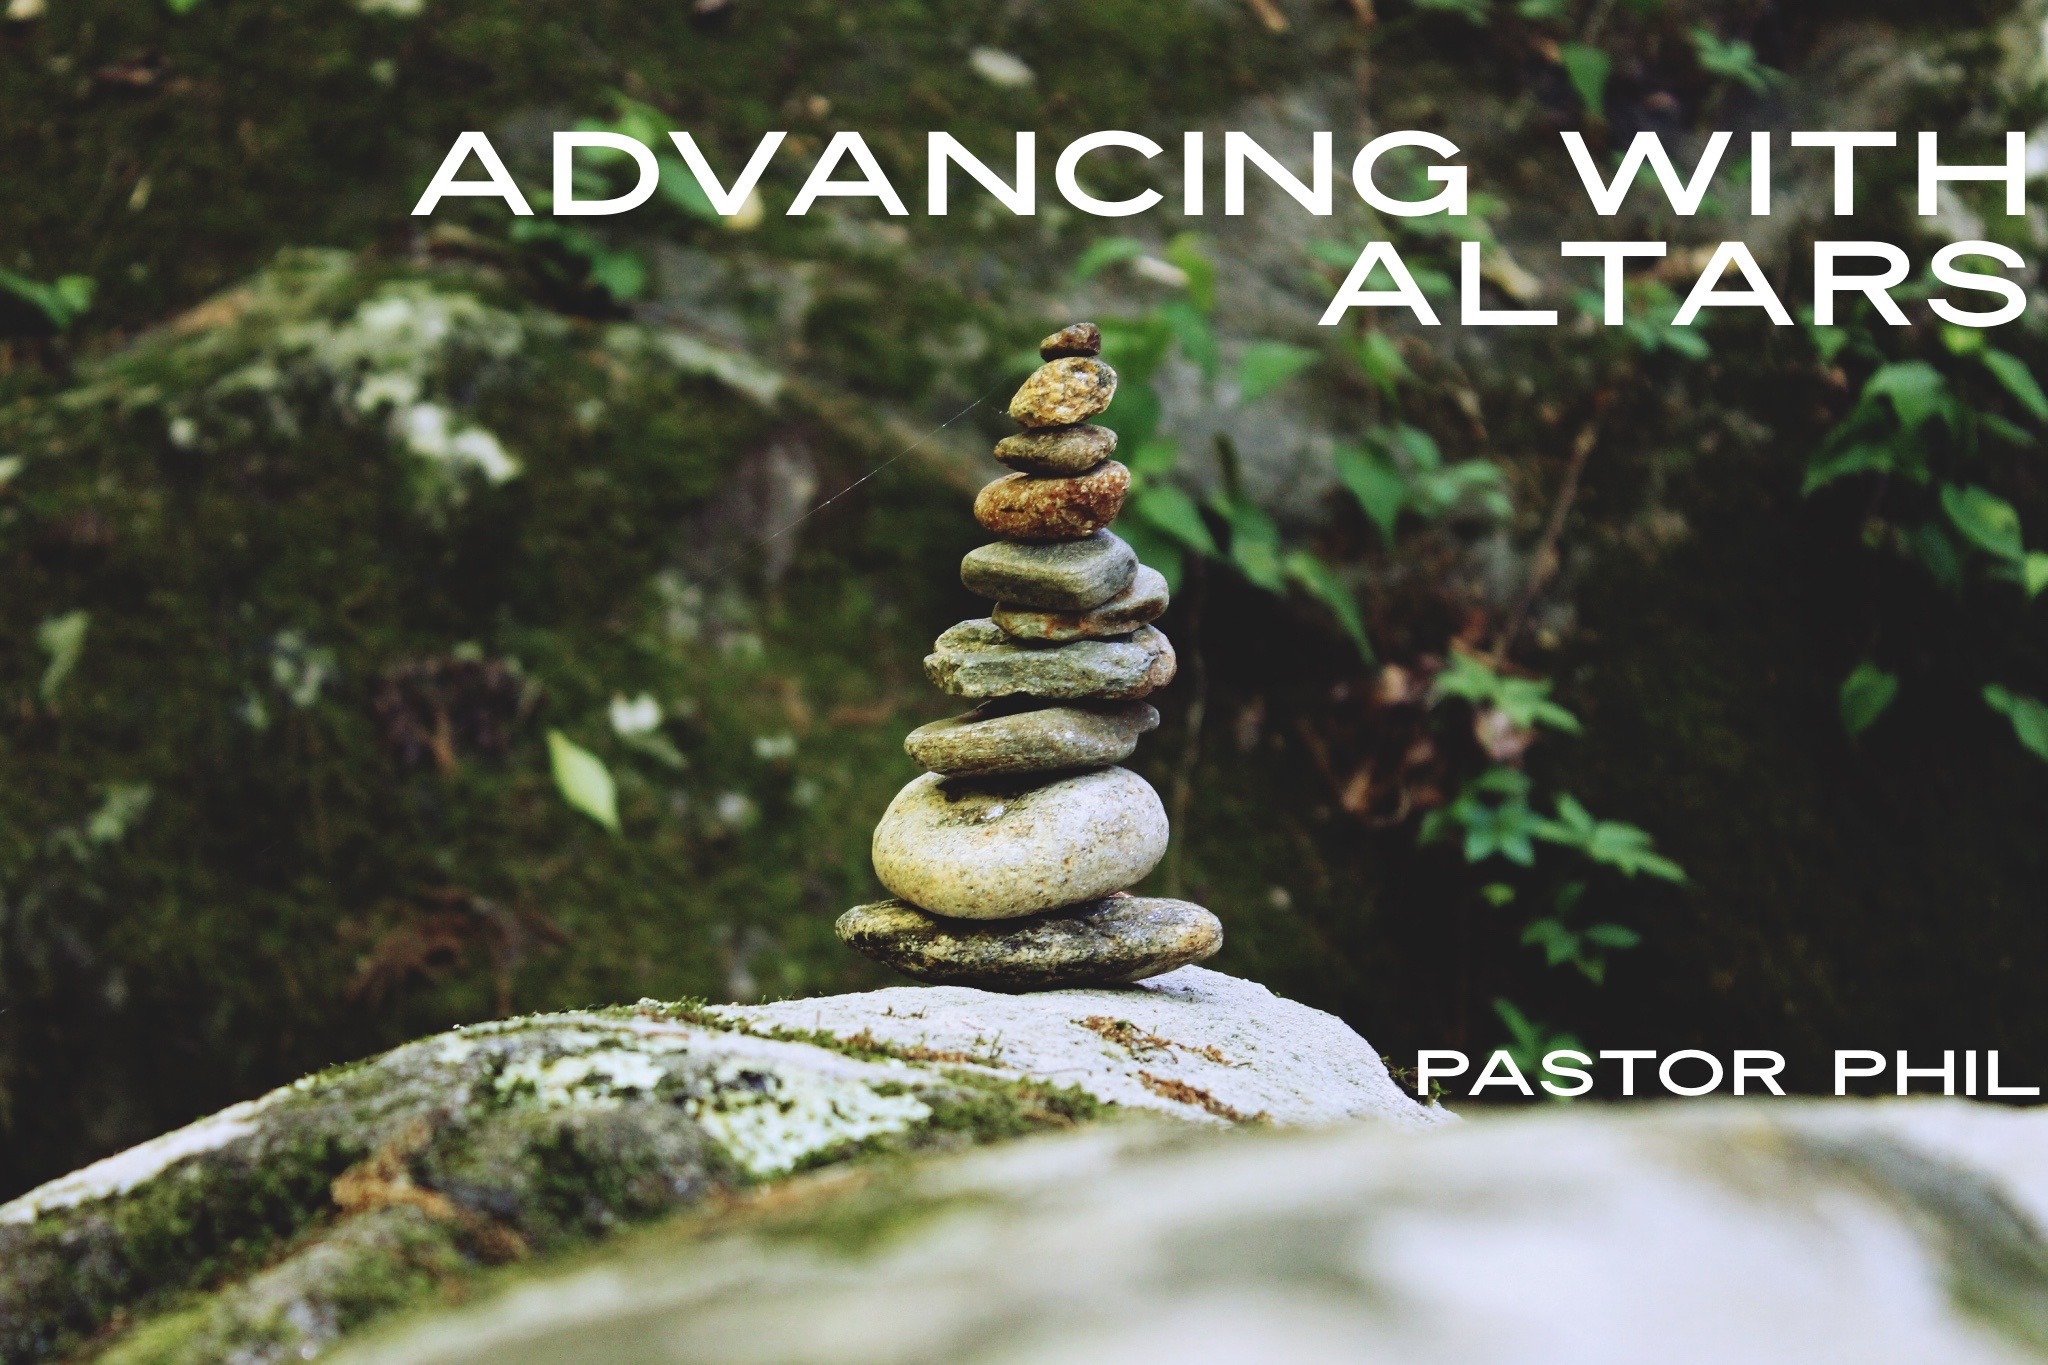 Advancing with Altars